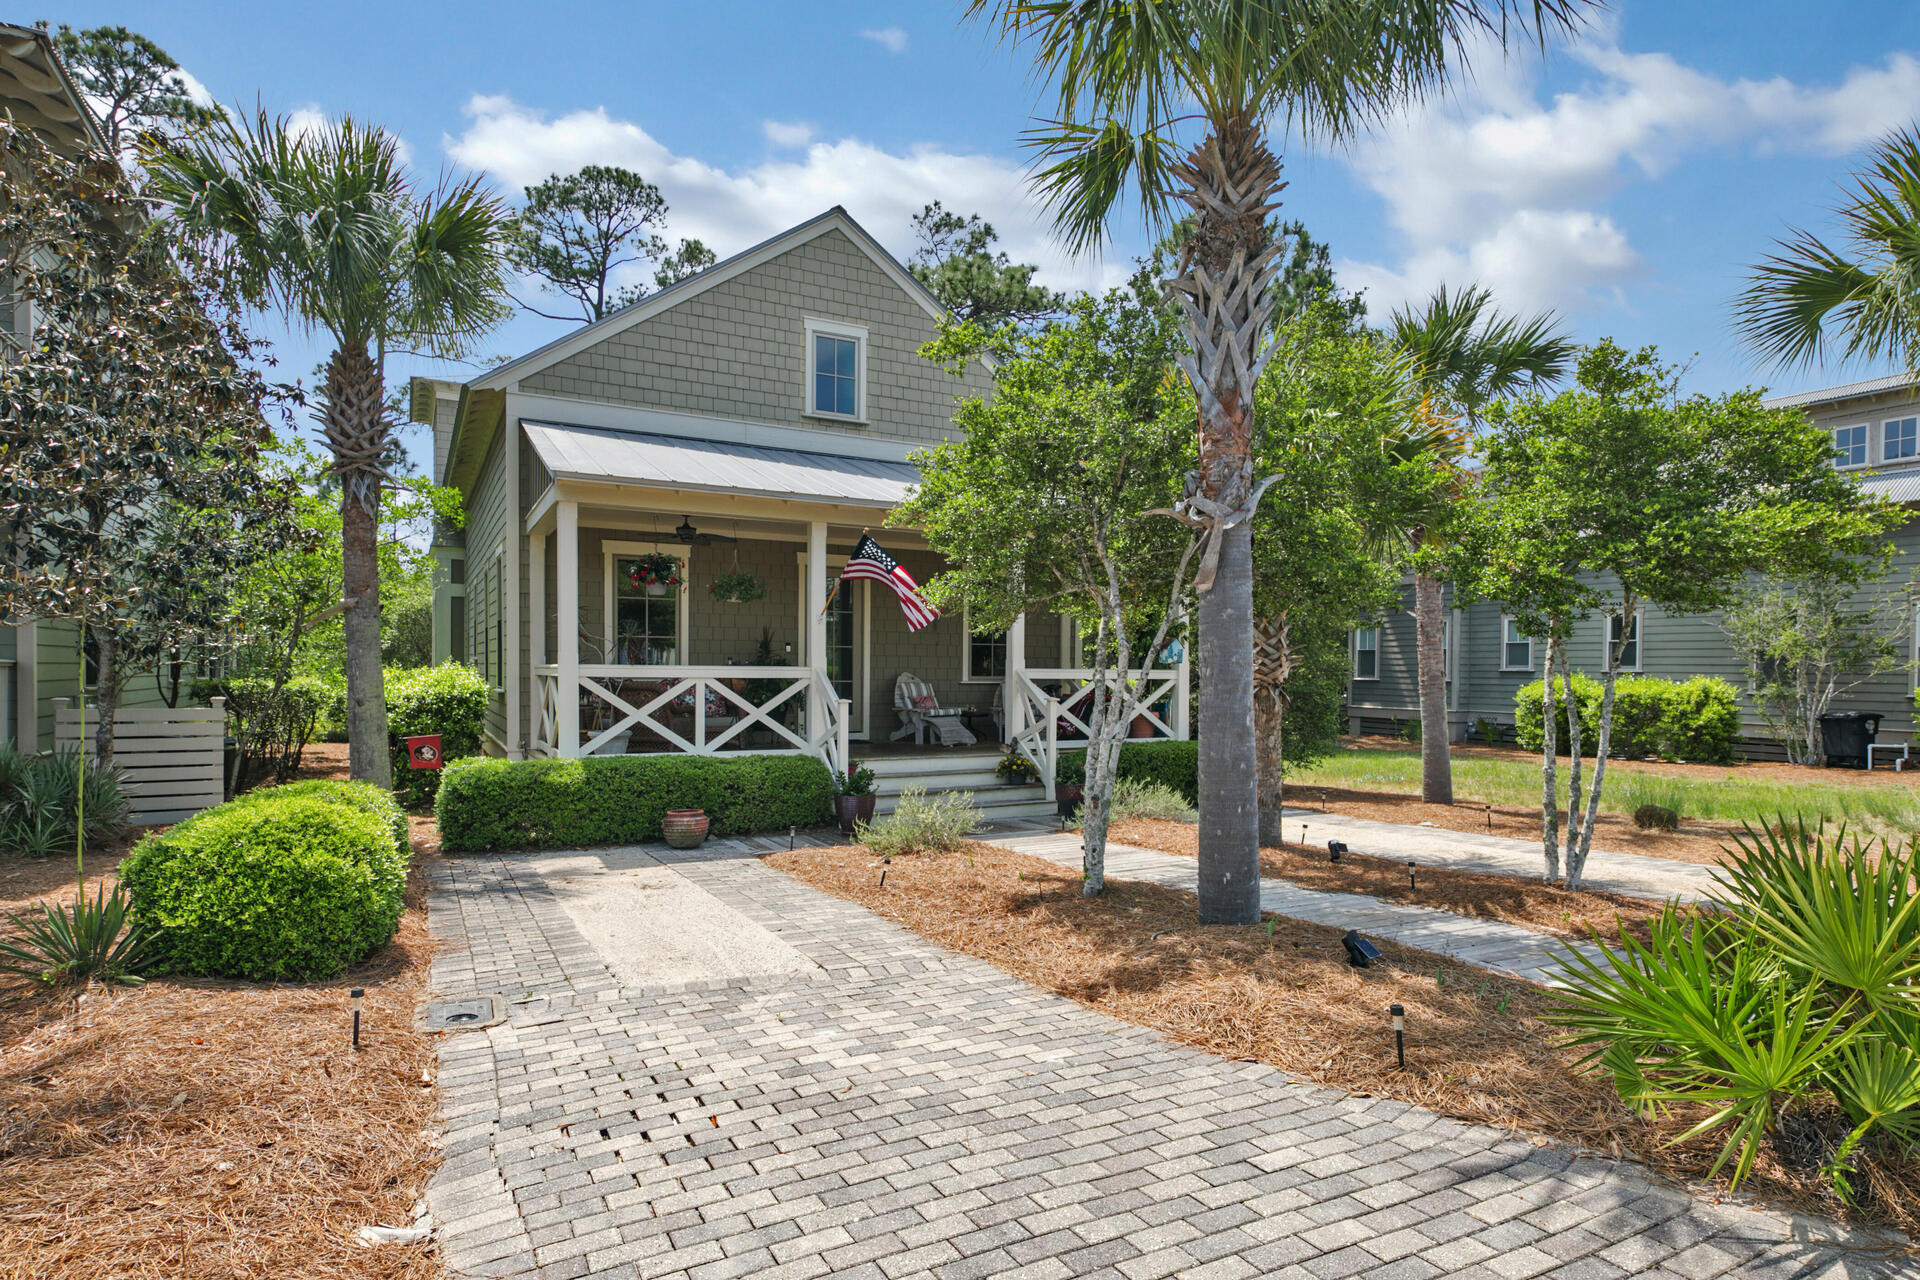 This fully furnished home is in the amazing Cypress Dunes subdivision, located on the West end of 30A (South side). you will be welcomed into this 1,988 sf cottage by the oversized covered Southern front porch. It features a large open floor plan with vaulted ceilings. The spacious kitchen has plenty of room to prepare delicious meals for your family.  There is a laundry room and pantry just off of the kitchen. Downstairs you will find 2 guest bedrooms with attached bathrooms. The hallway that separates the bedrooms opens up to the large screened porch with ample seating. From there you can enjoy the Cypress pond and all of its wildlife. Upstairs is a large Master suite with a loft area for relaxing or reading a book. From the private Master balcony, you can feel the Gulf breezes with views of the Cypress pond. Cypress Dunes boasts a wonderful amenities center complete with a chefs kitchen and large TV for parties and entertaining. Cypress Dunes has tennis courts, a pickleball court, an exercise room, an outdoor fireplace, and a green space for families and pets. Cypress Dunes has an infinity edge pool that overlooks Topsail Hill State Park and the Gulf of Mexico. The neighborhood has a second smaller pool with a beautiful fountain. There are walking trails and boardwalks that meander over the beautiful 200 year old Cypress ponds. This home has a built in natural gas generator and plenty of storage.  The HOA provides property landscaping, security and an on site property manager.